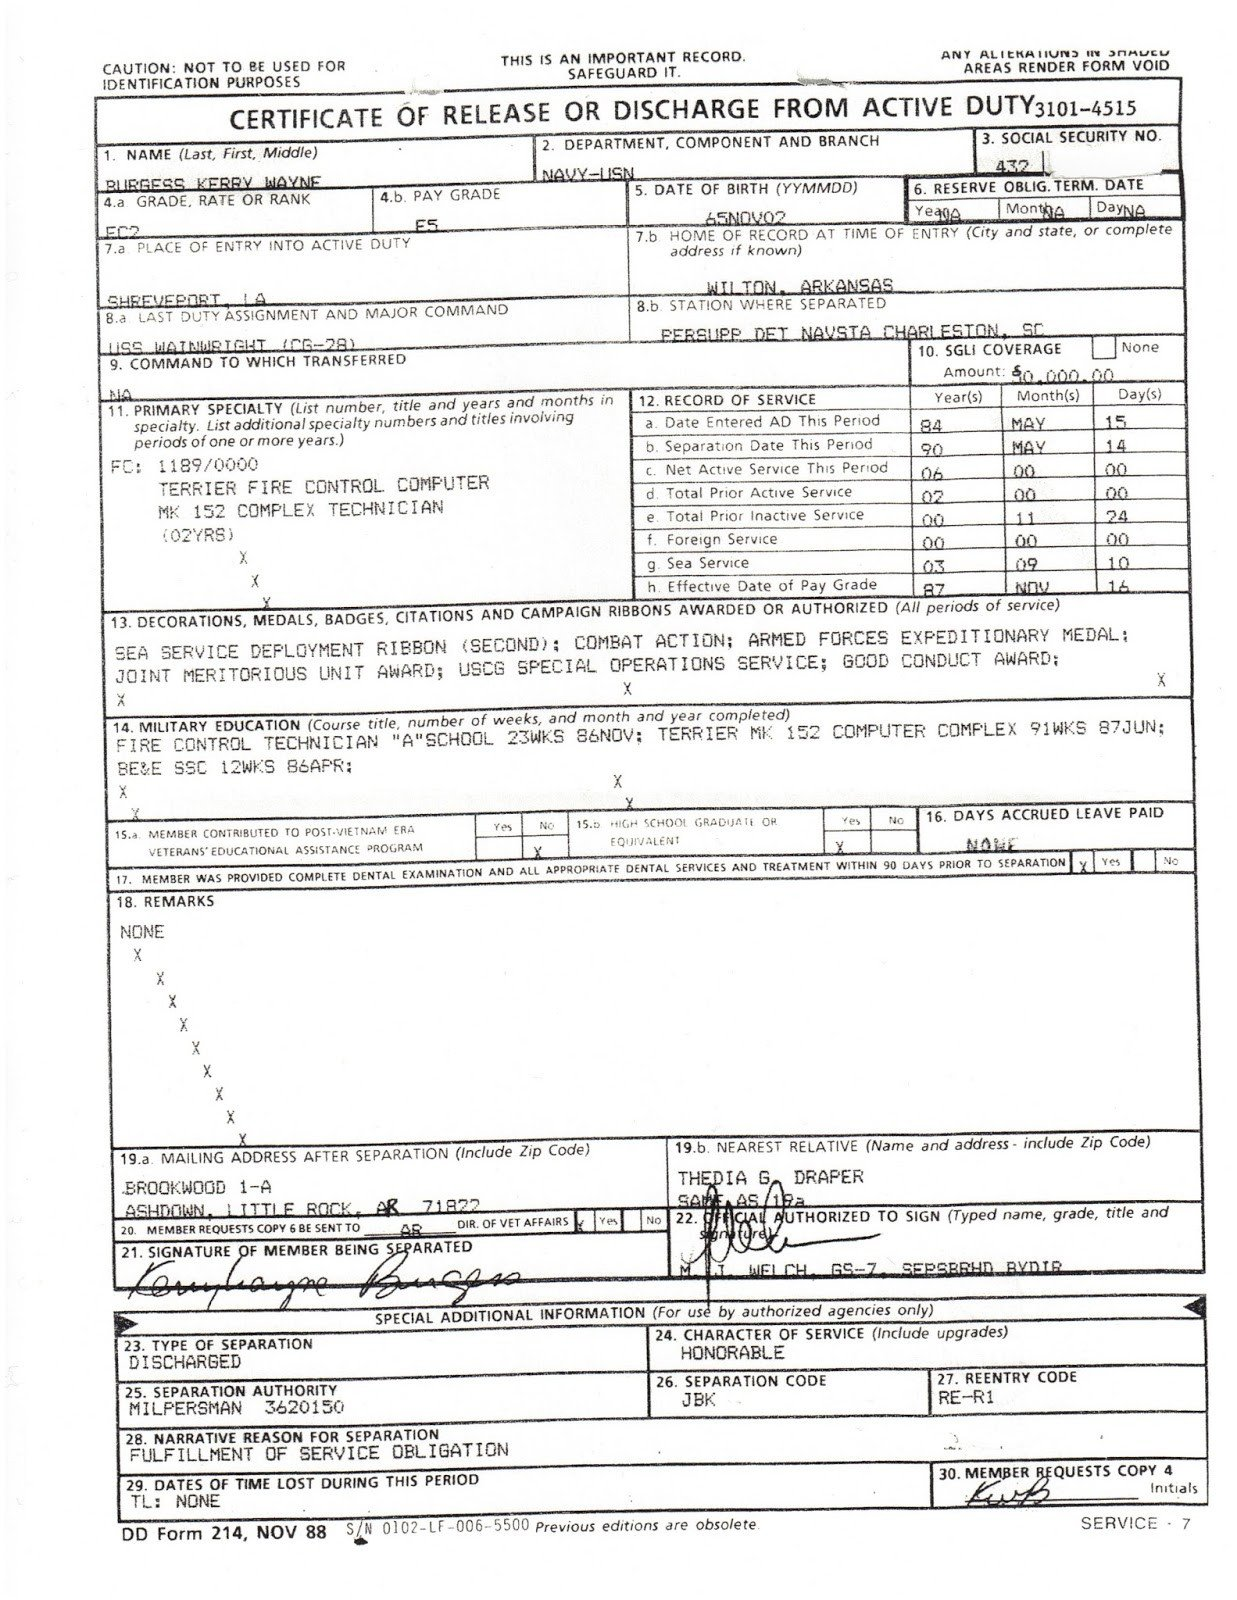 Blank Dd form 214 Pdf What Does A Dd214 Look Like